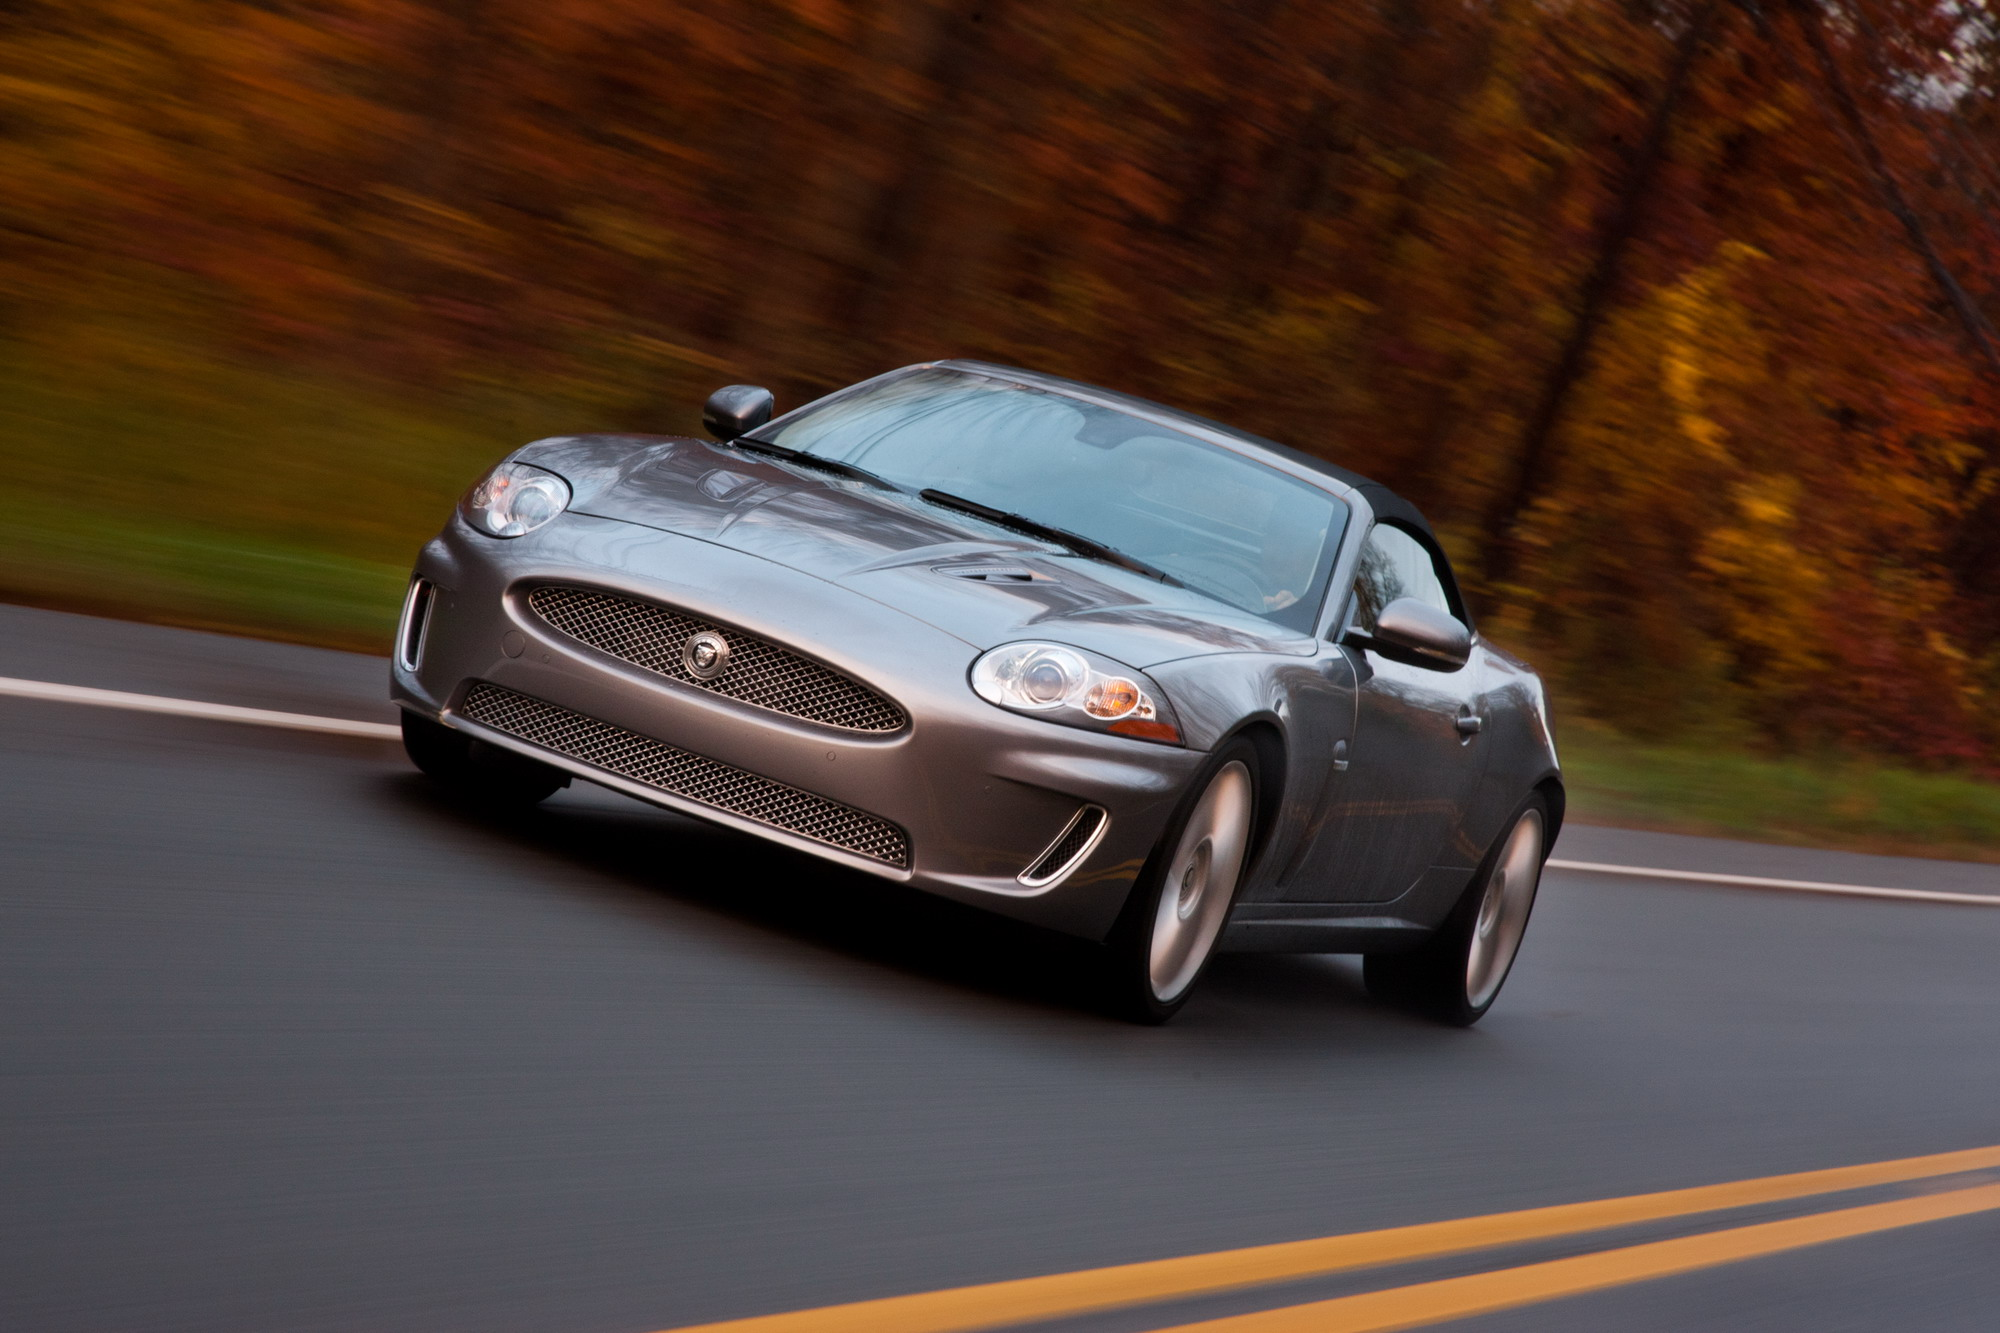 porsche sale for coupe forums rennlist xkr img trade marketplace fs vehicle edition jaguar or